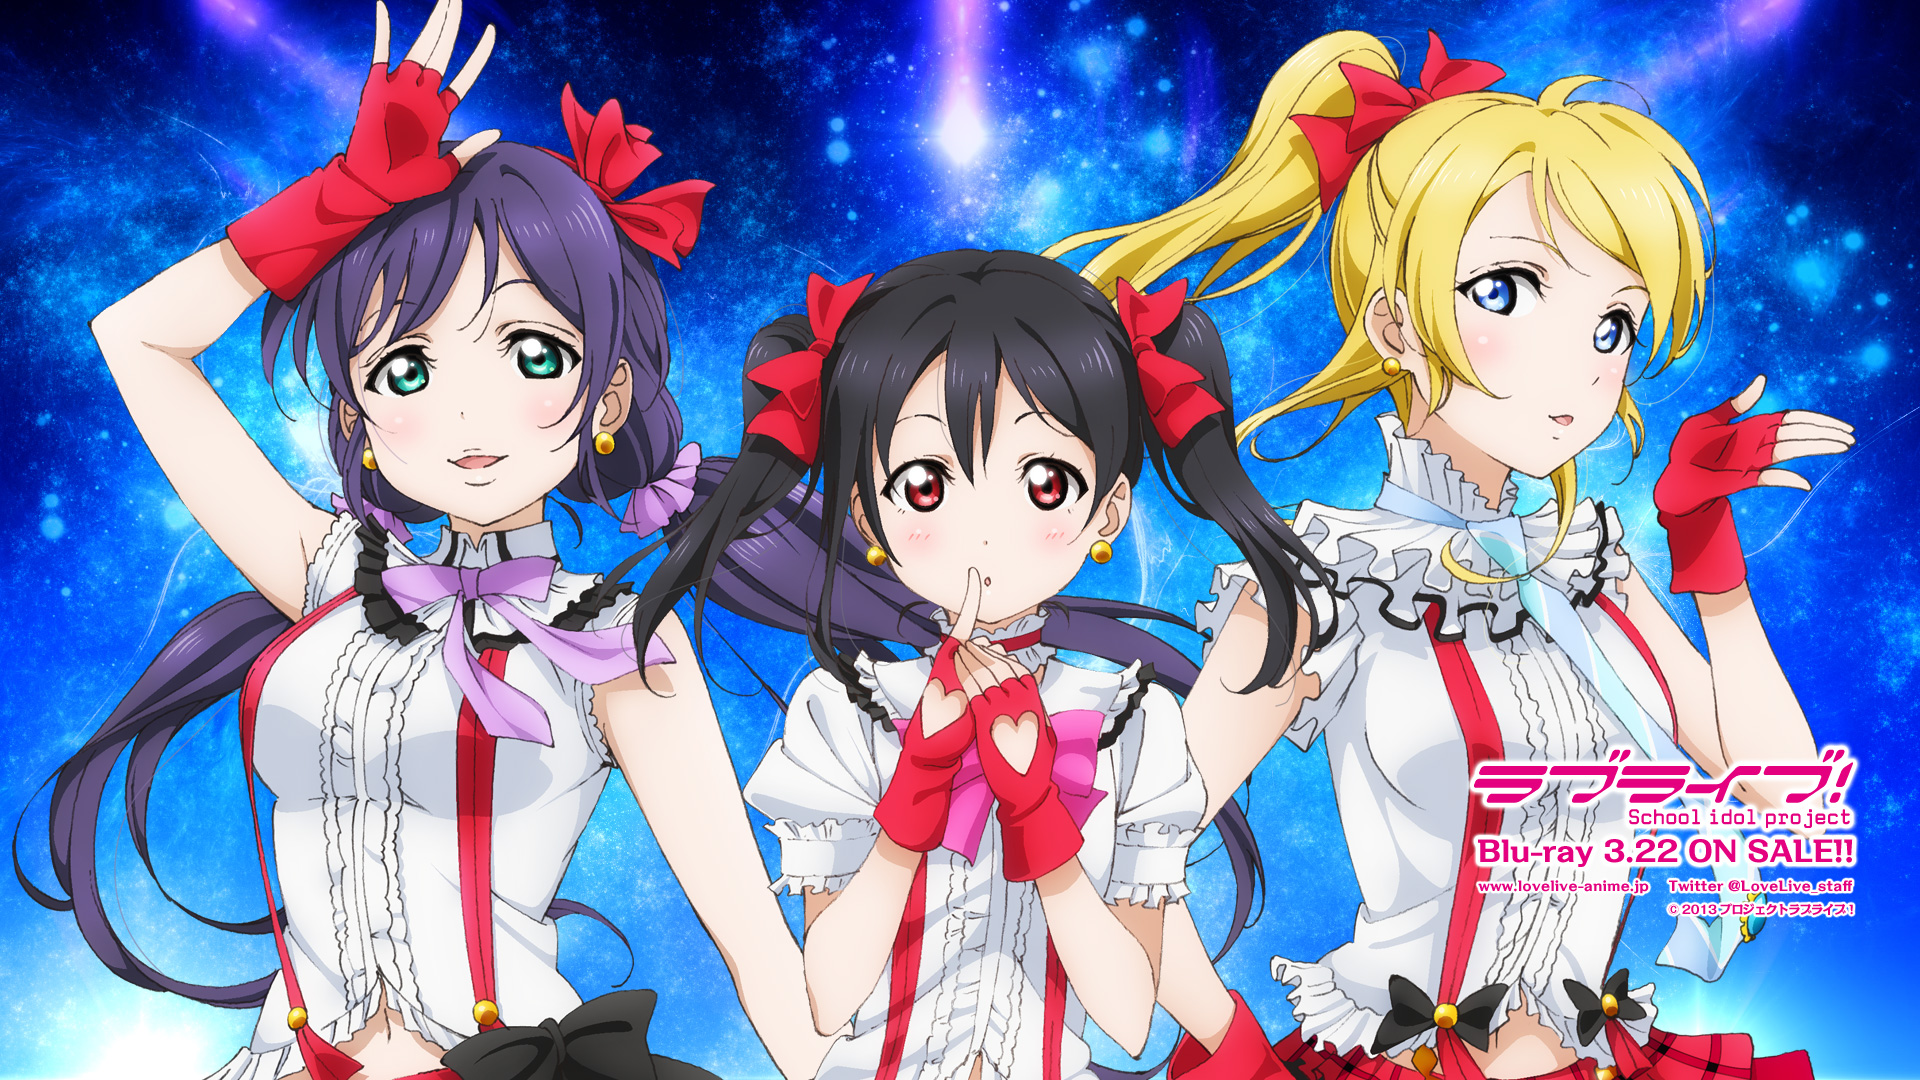 Love cartoon Live Wallpaper : Love Live!, Wallpaper - Zerochan Anime Image Board